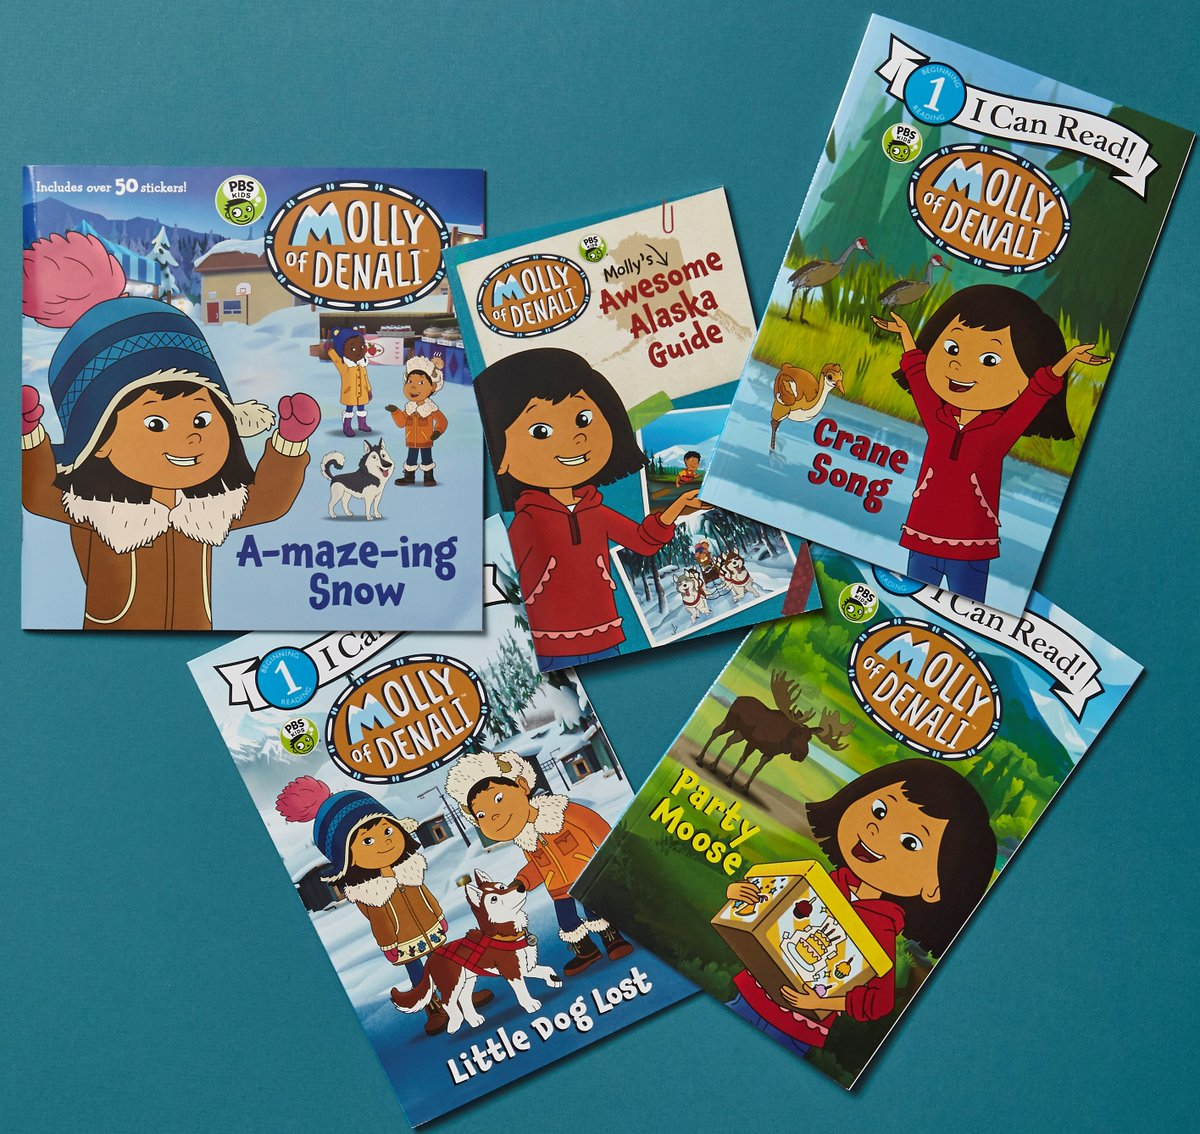 Are your kids enjoying @MollyOfDenali on @PBSKIDS? Did you know there are books, too?! fal.cn/36DXG